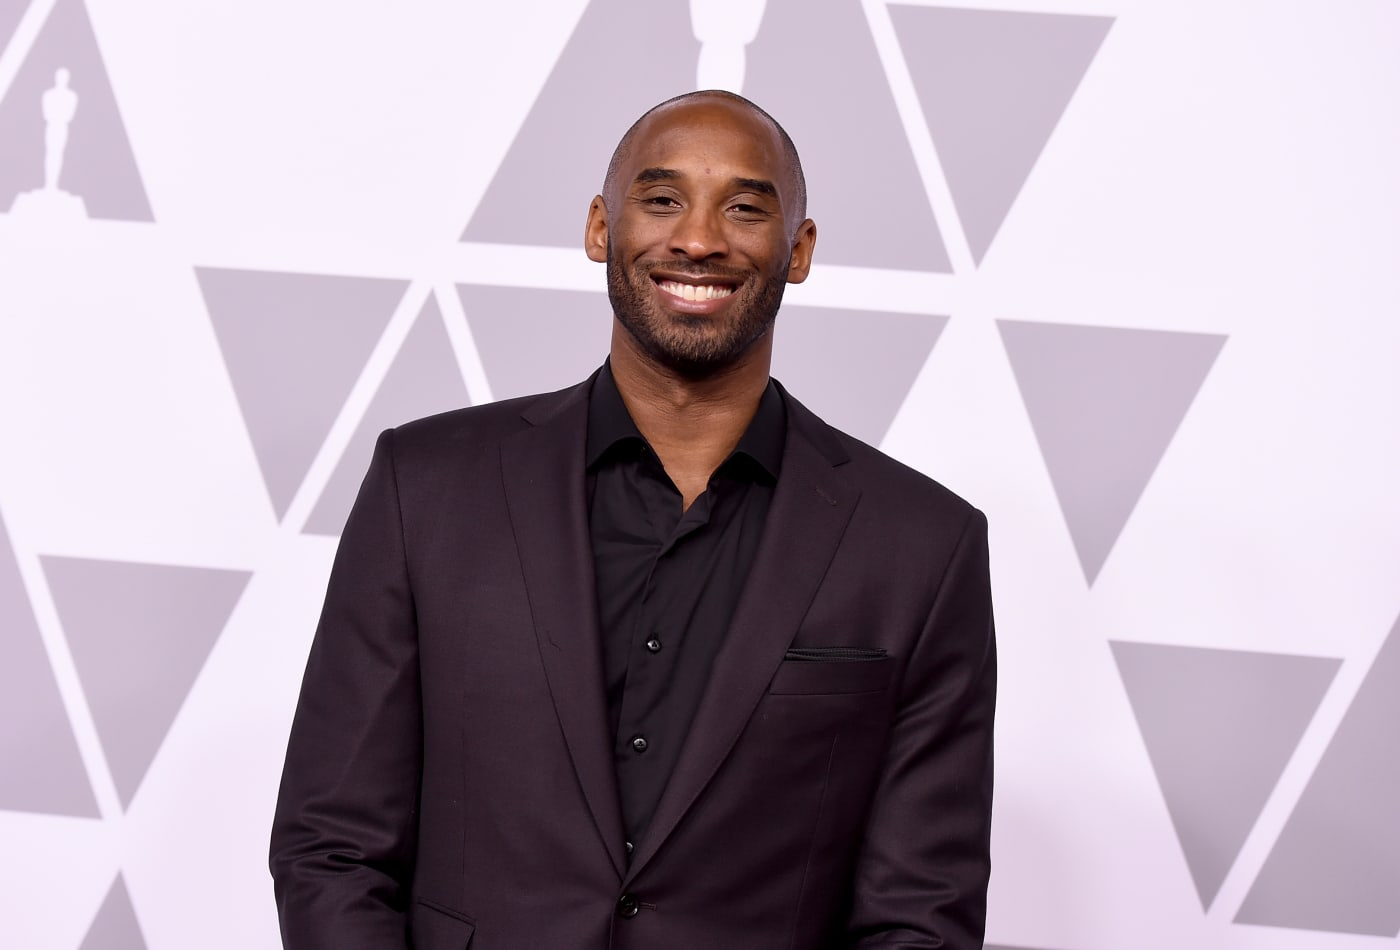 Kobe Bryant Shares What He Learned From Oprah Tim Cook